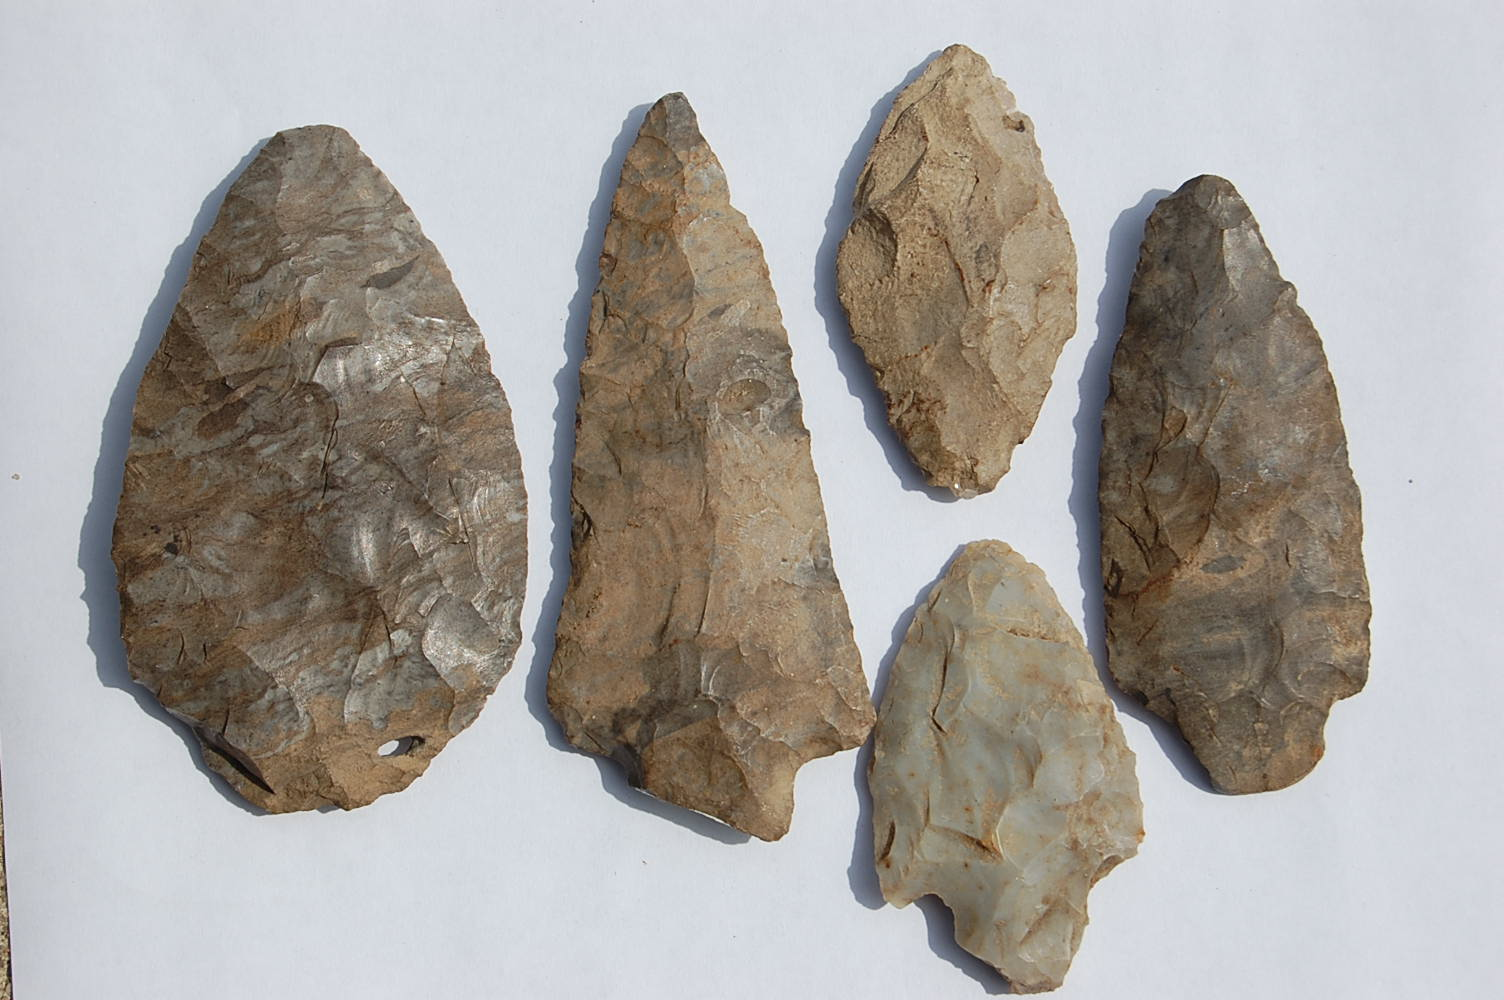 dating stone arrowheads How do archaeologists date artifacts dating artifacts is done in an extremely careful manner in order to provide the most accurate results.